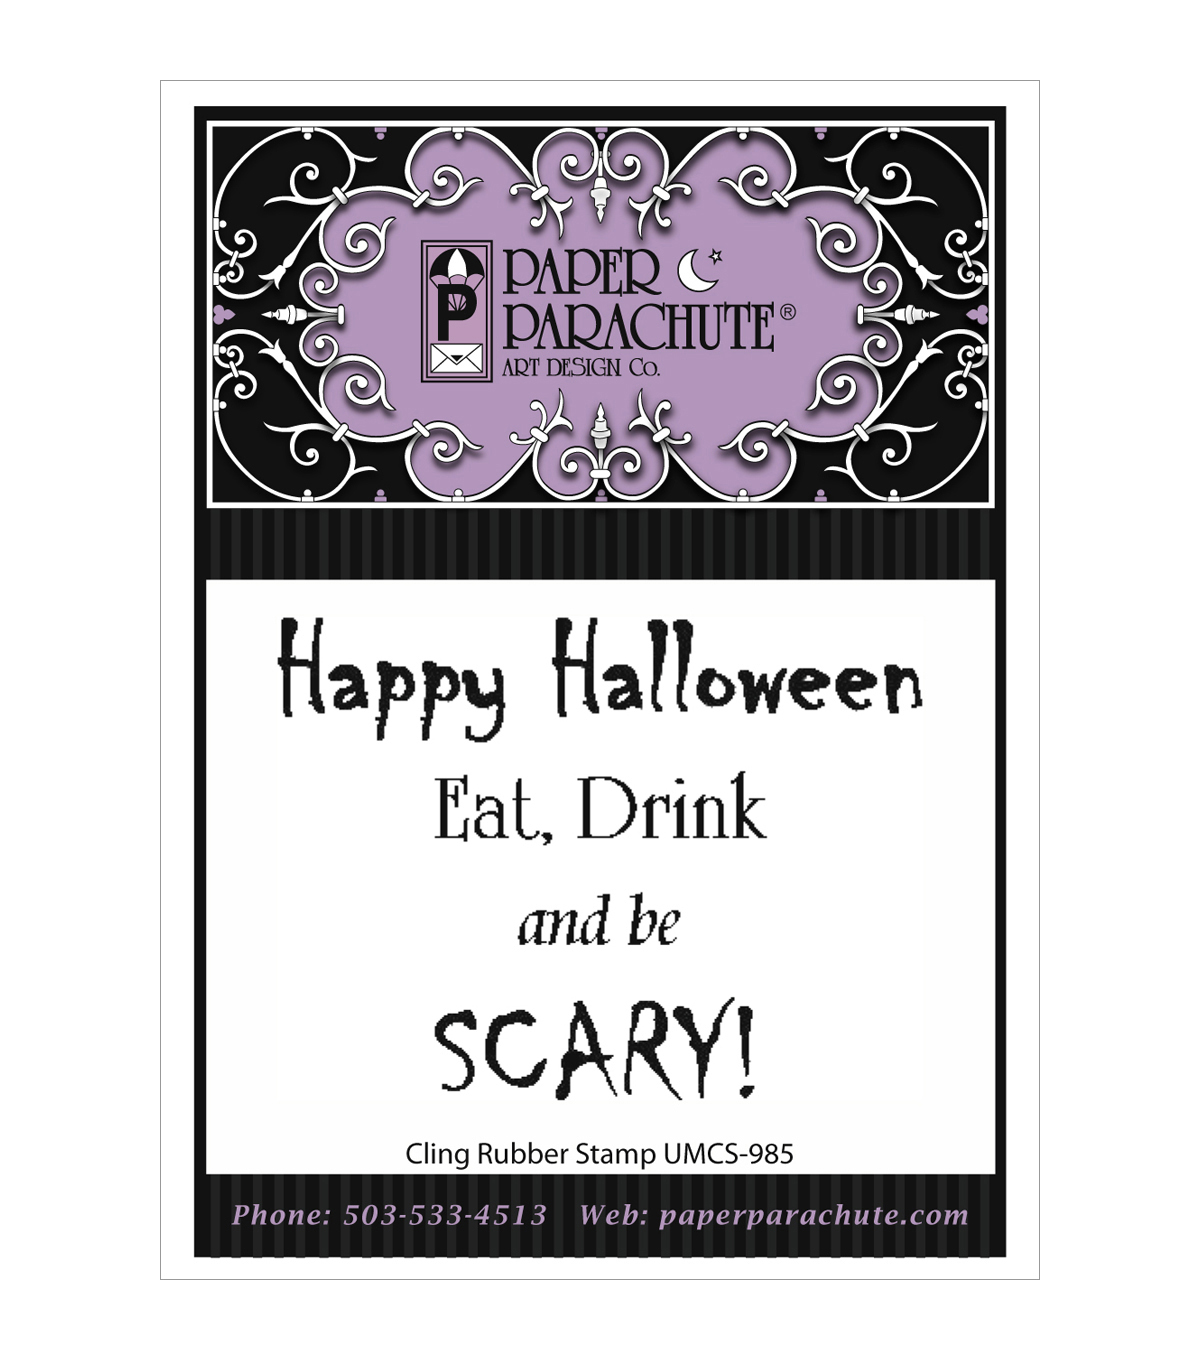 Paper Parachute Cling Rubber Stamps-Scary Phrase